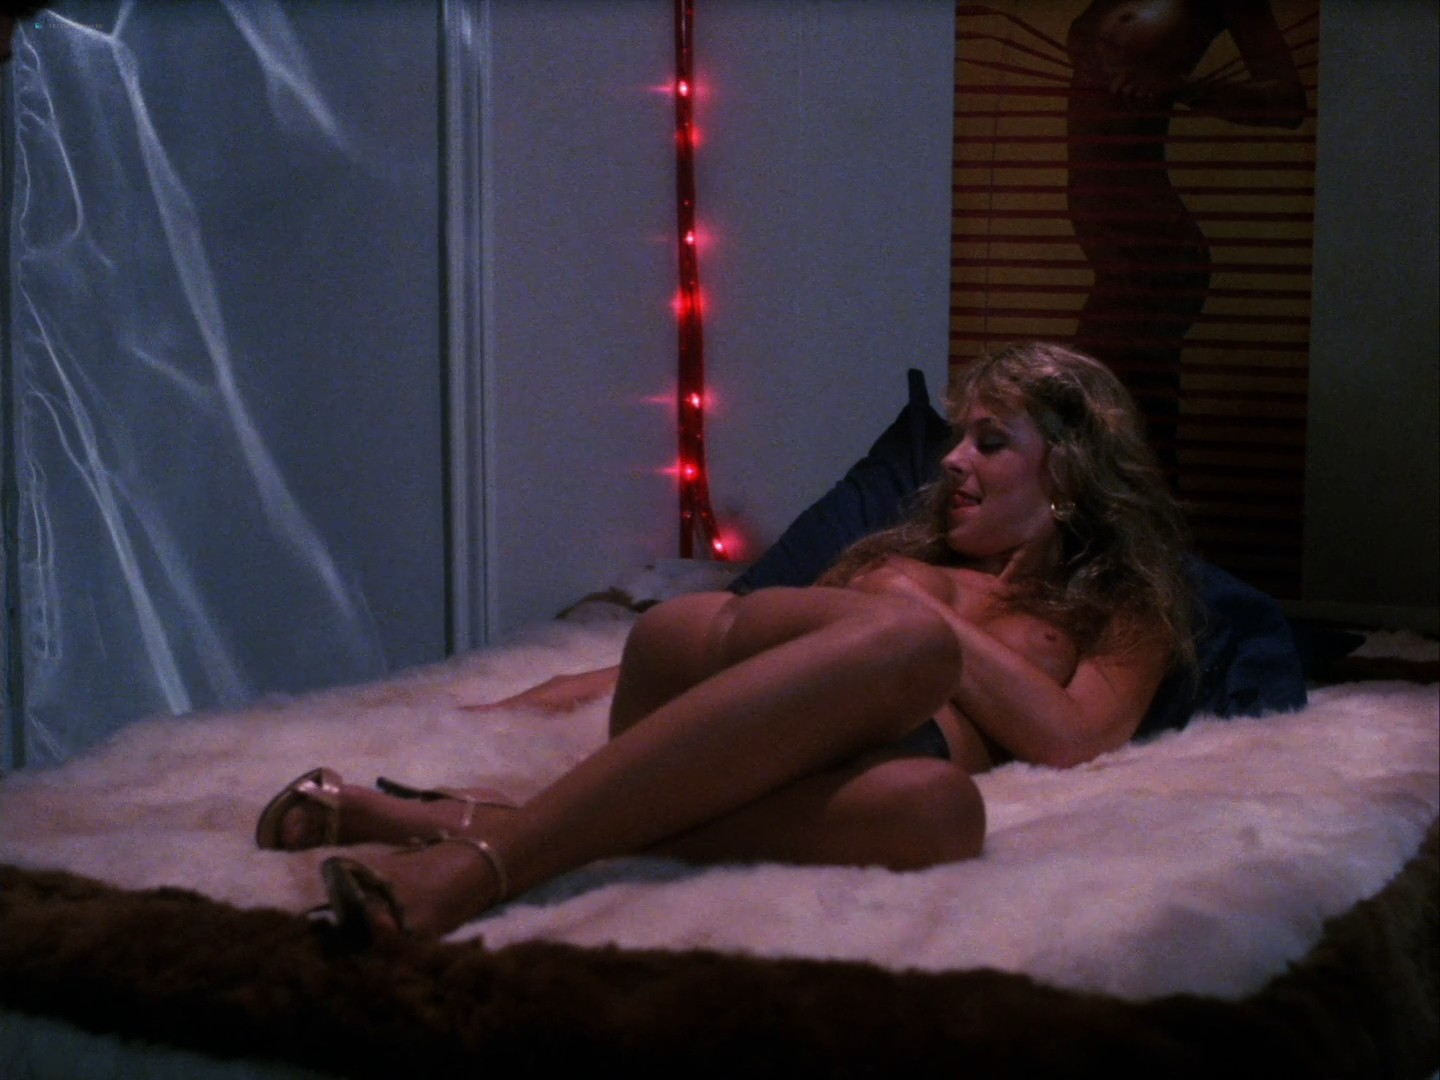 Samantha Fox nude Veronica Hart, Suzanne Vale and others nude and sex - Sex Appeal (1986) HD 1080p Web (14)